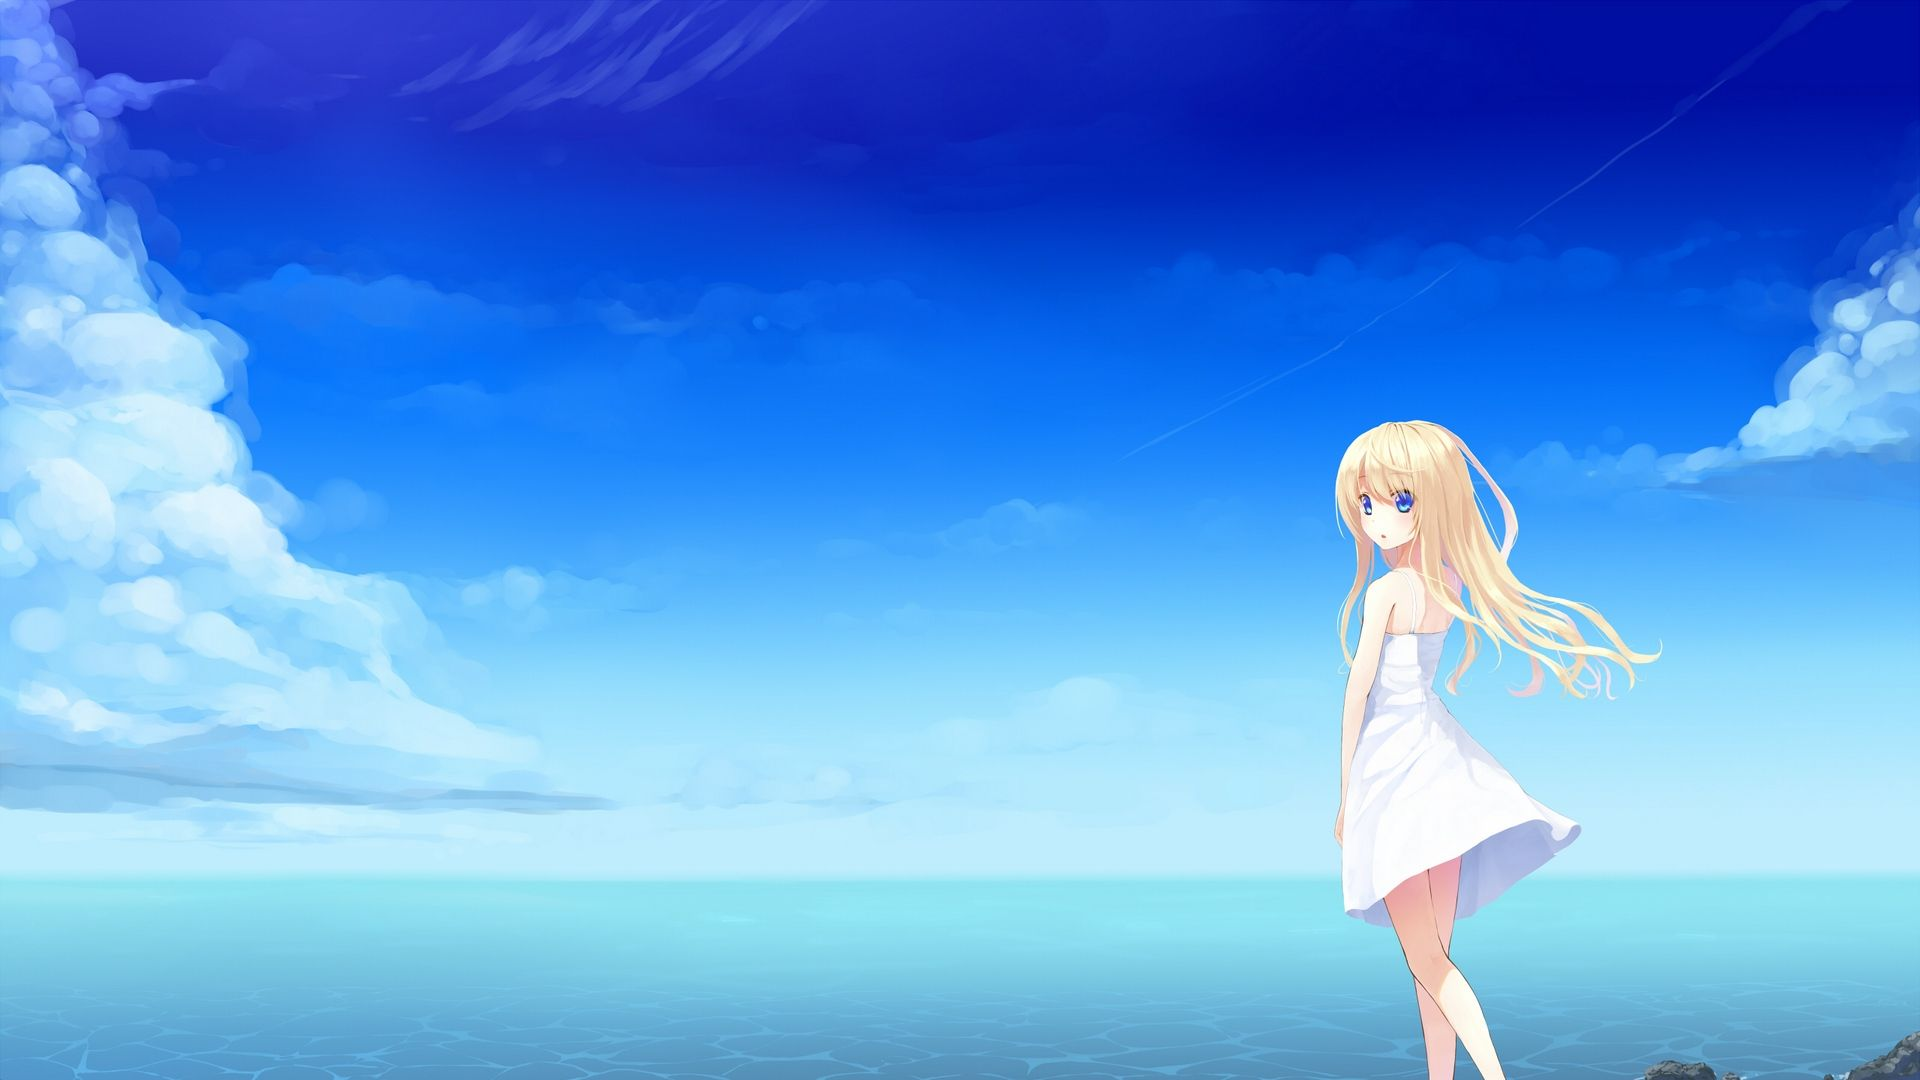 Anime Sea Wallpapers Top Free Anime Sea Backgrounds